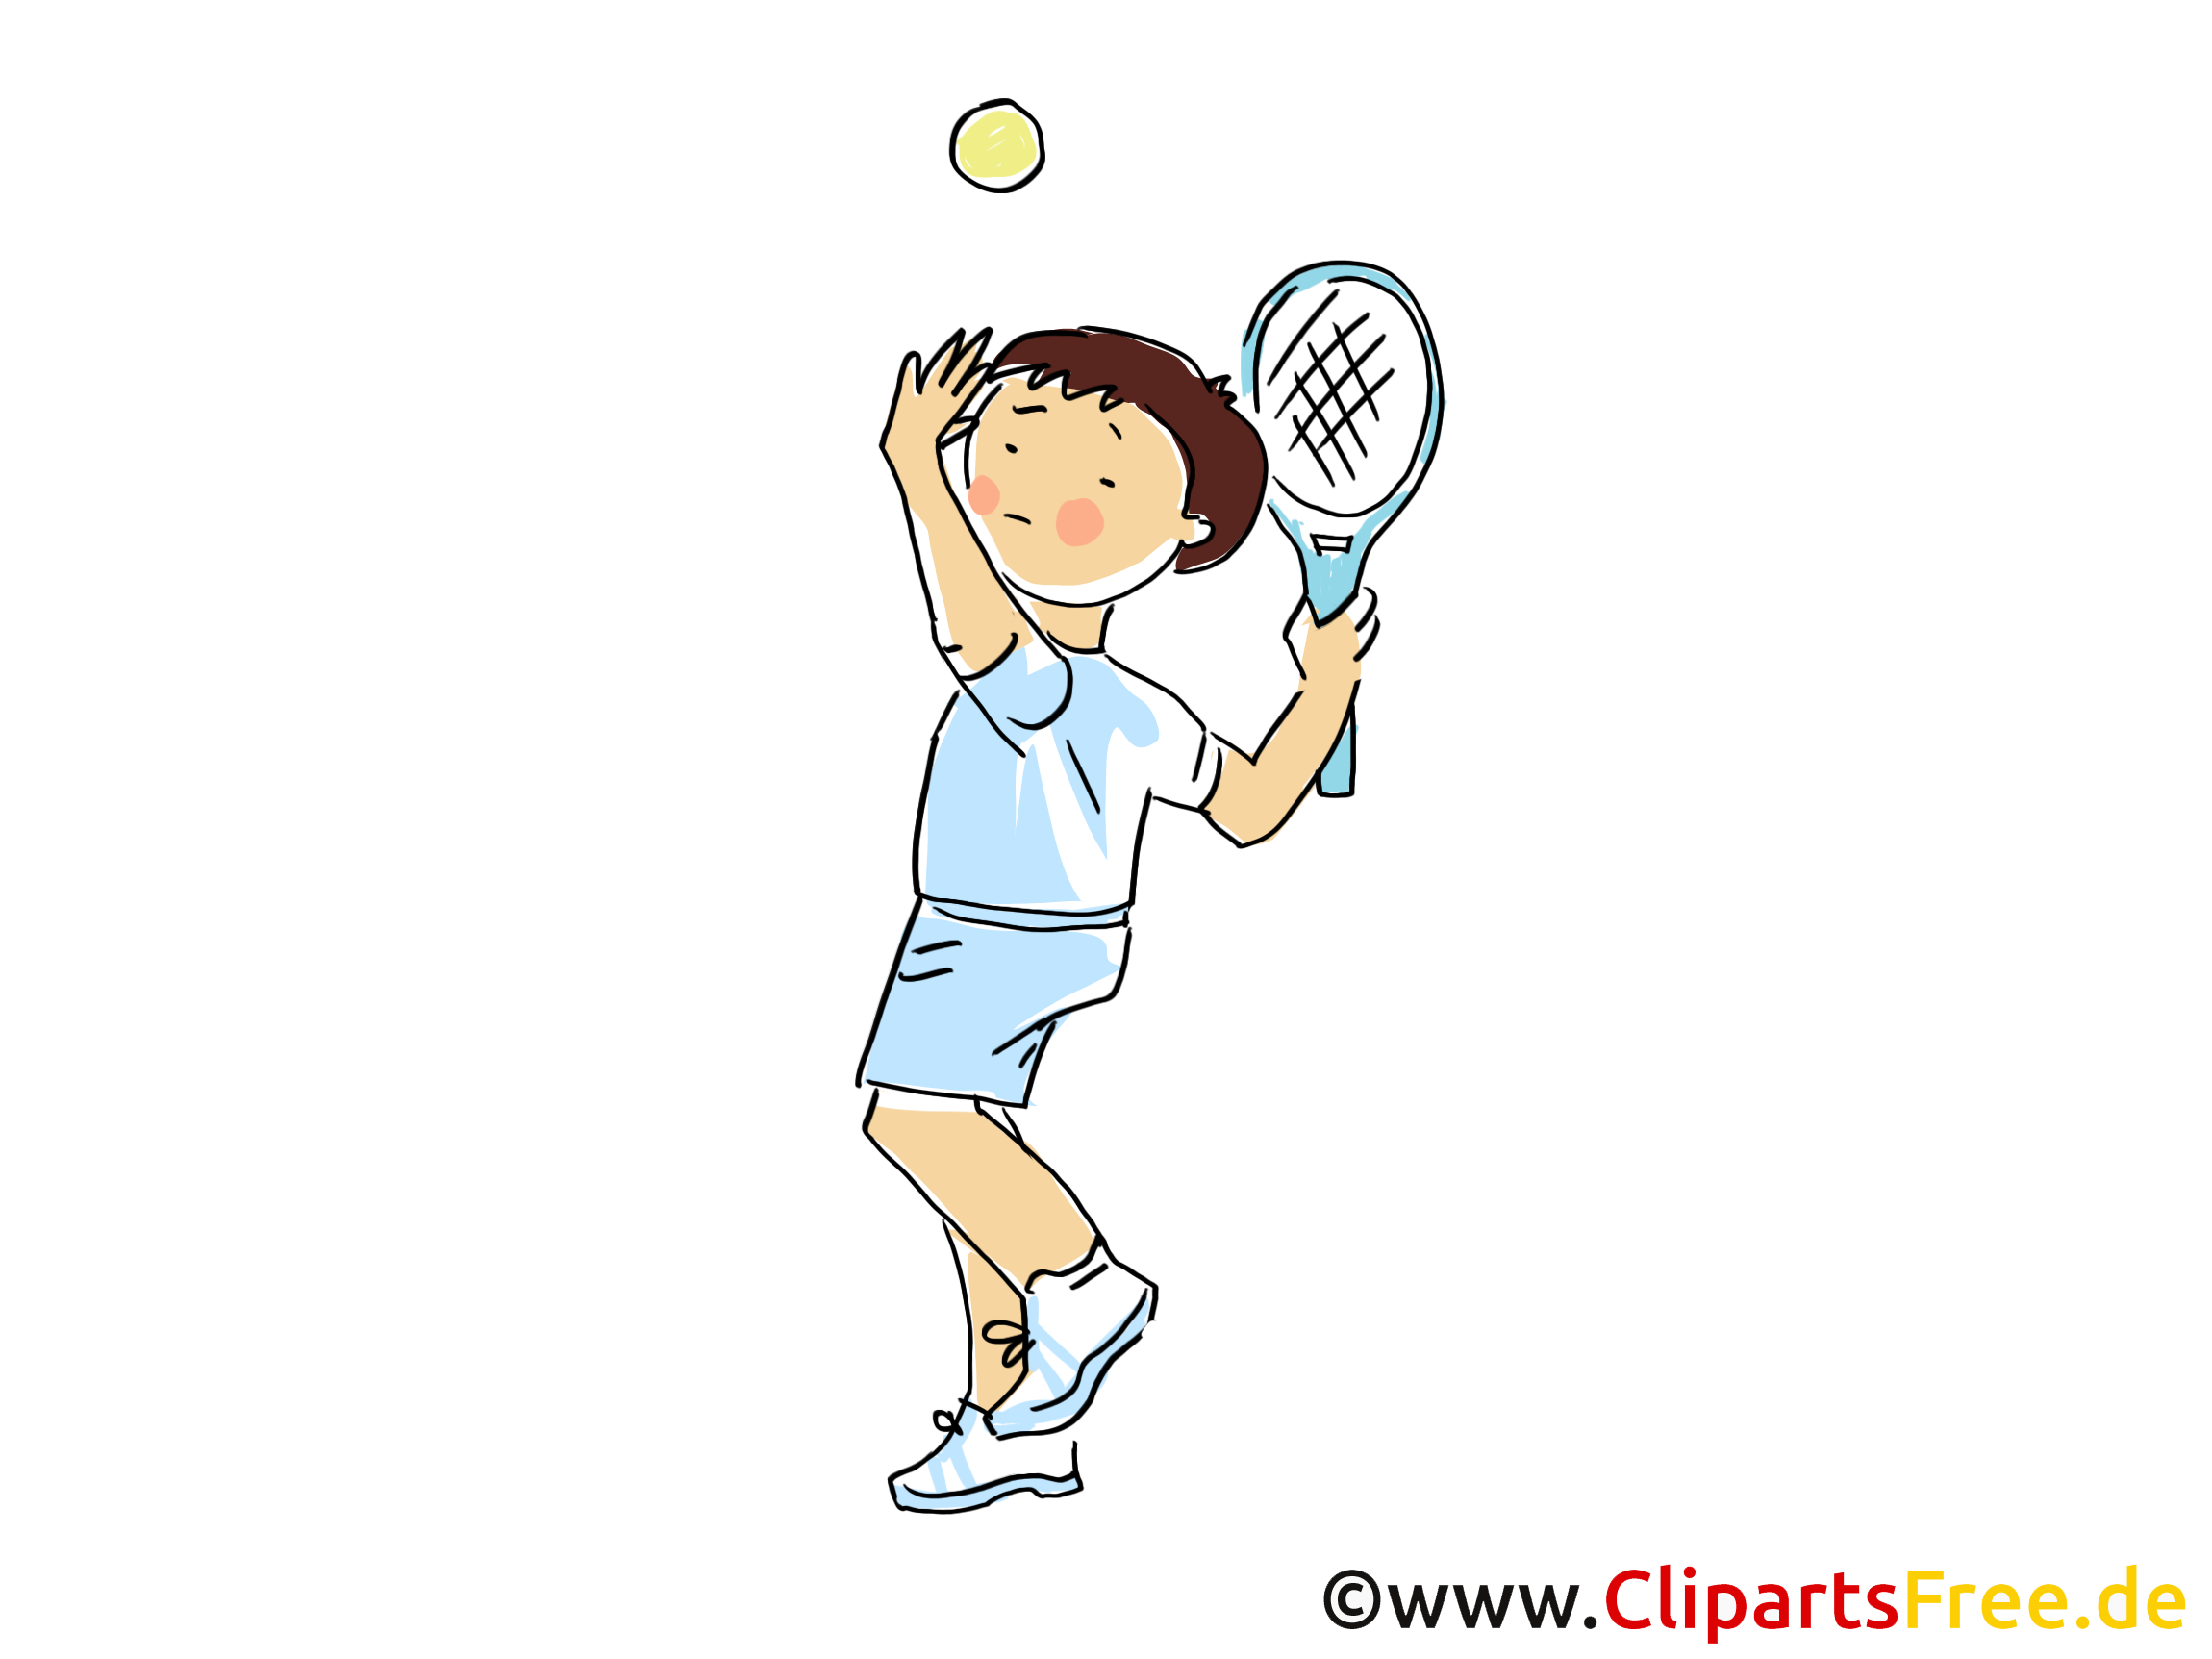 Bildtitel: Tennis Bild, Sport Clipart, Comic, Cartoon, Image gratis